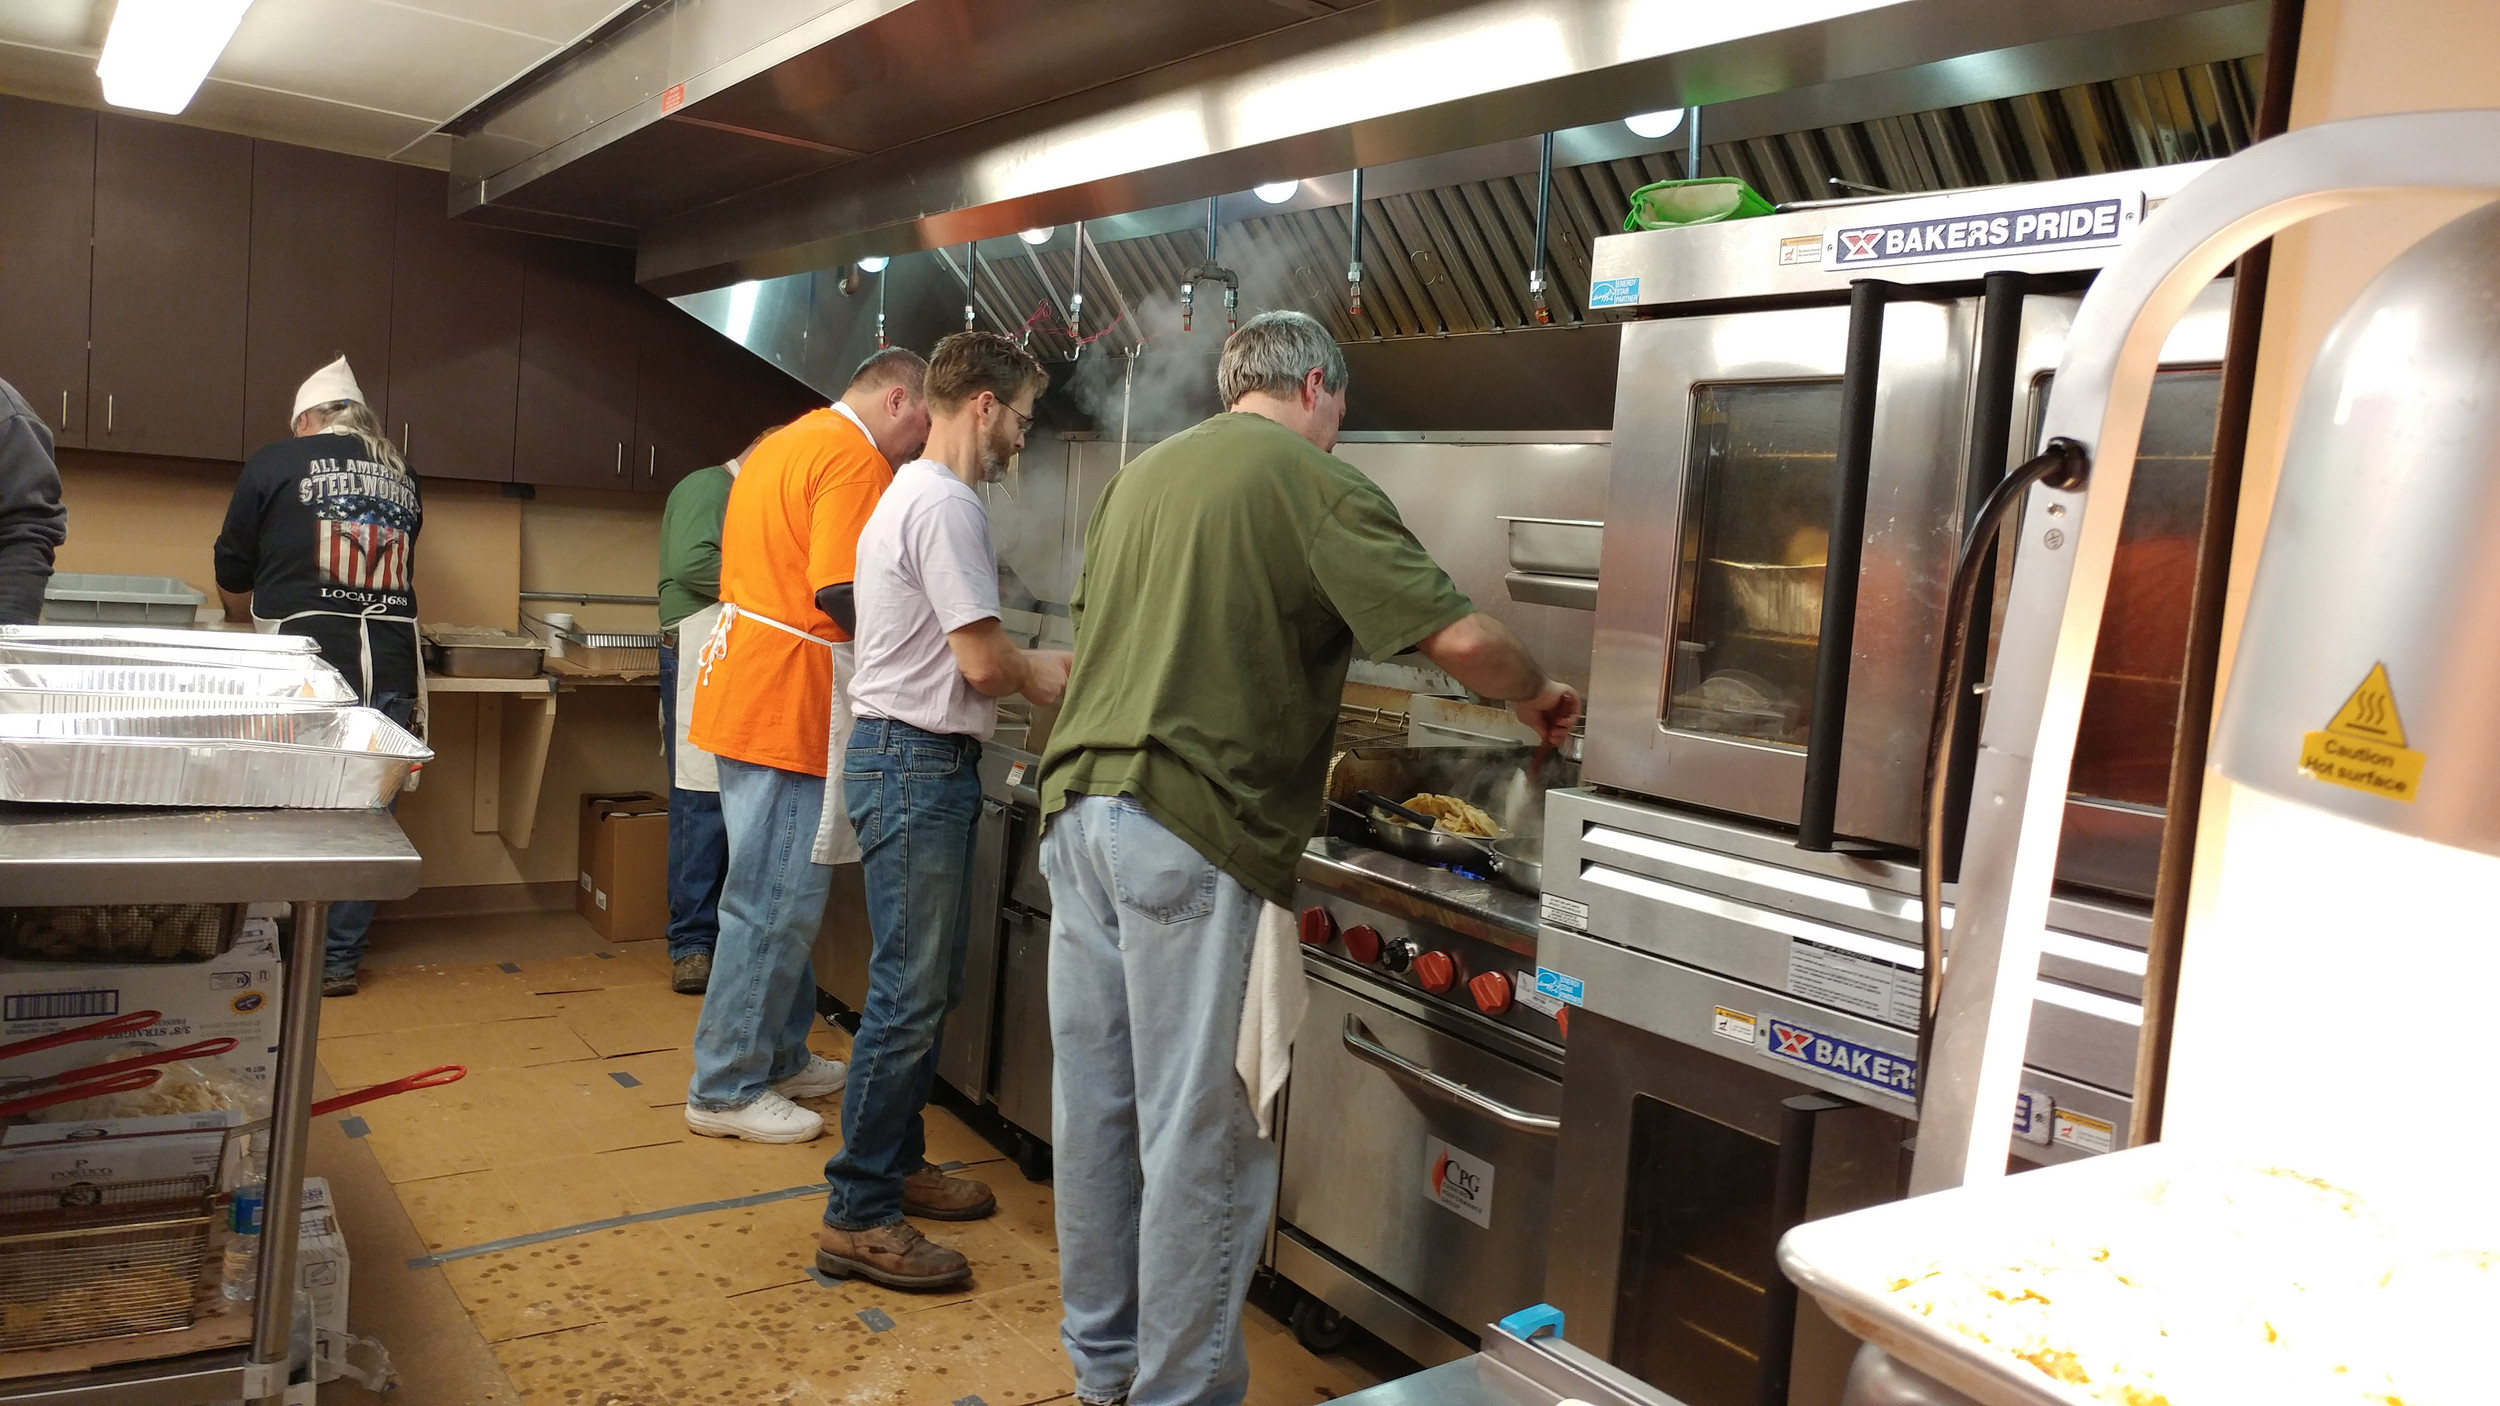 Workers in the kitchen were busy for the duration of the event making food and bringing it to the servers.